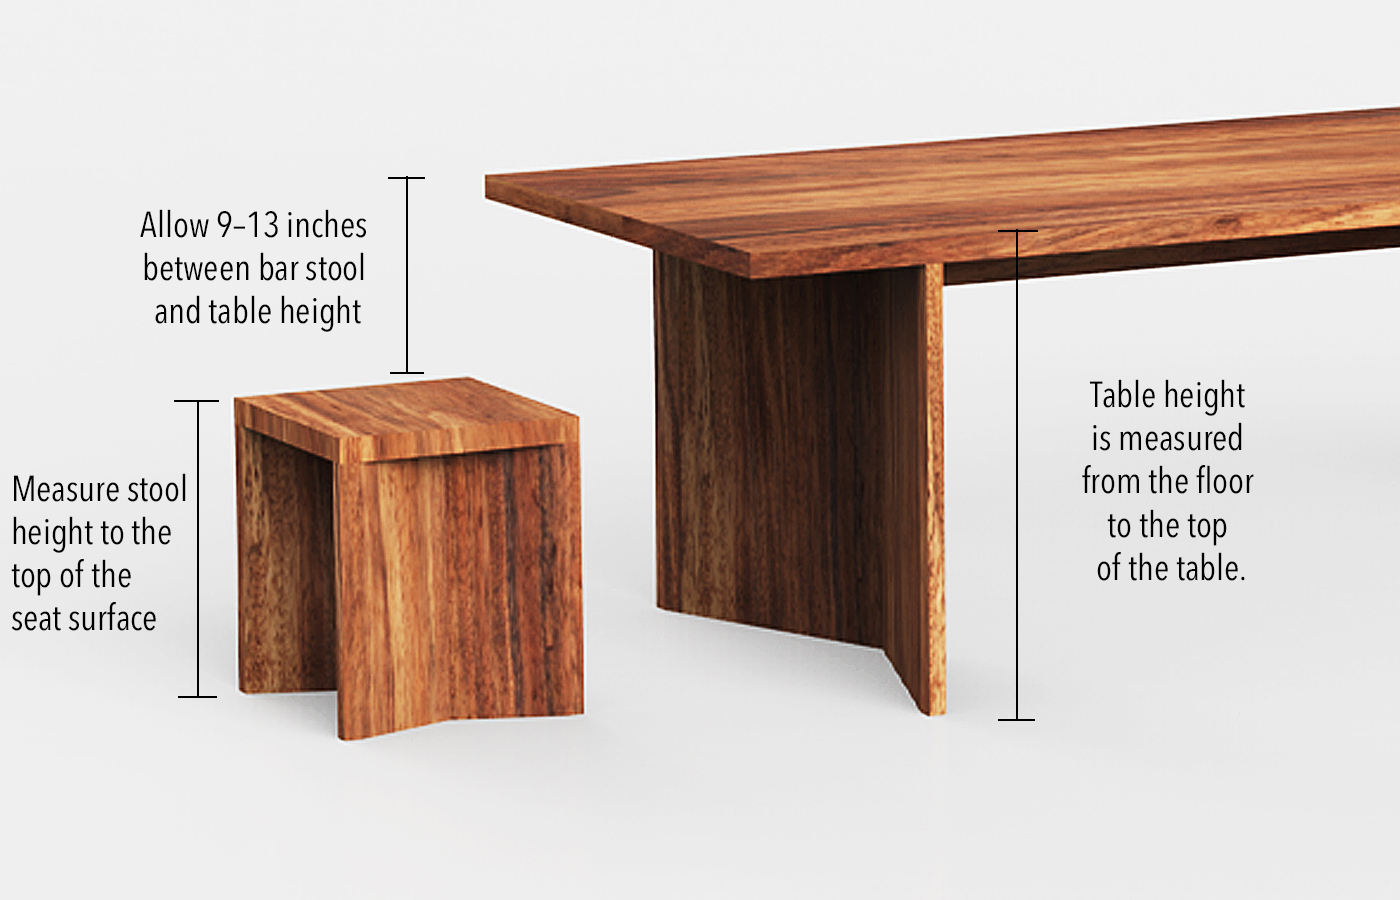 Standard Bar Stool Height